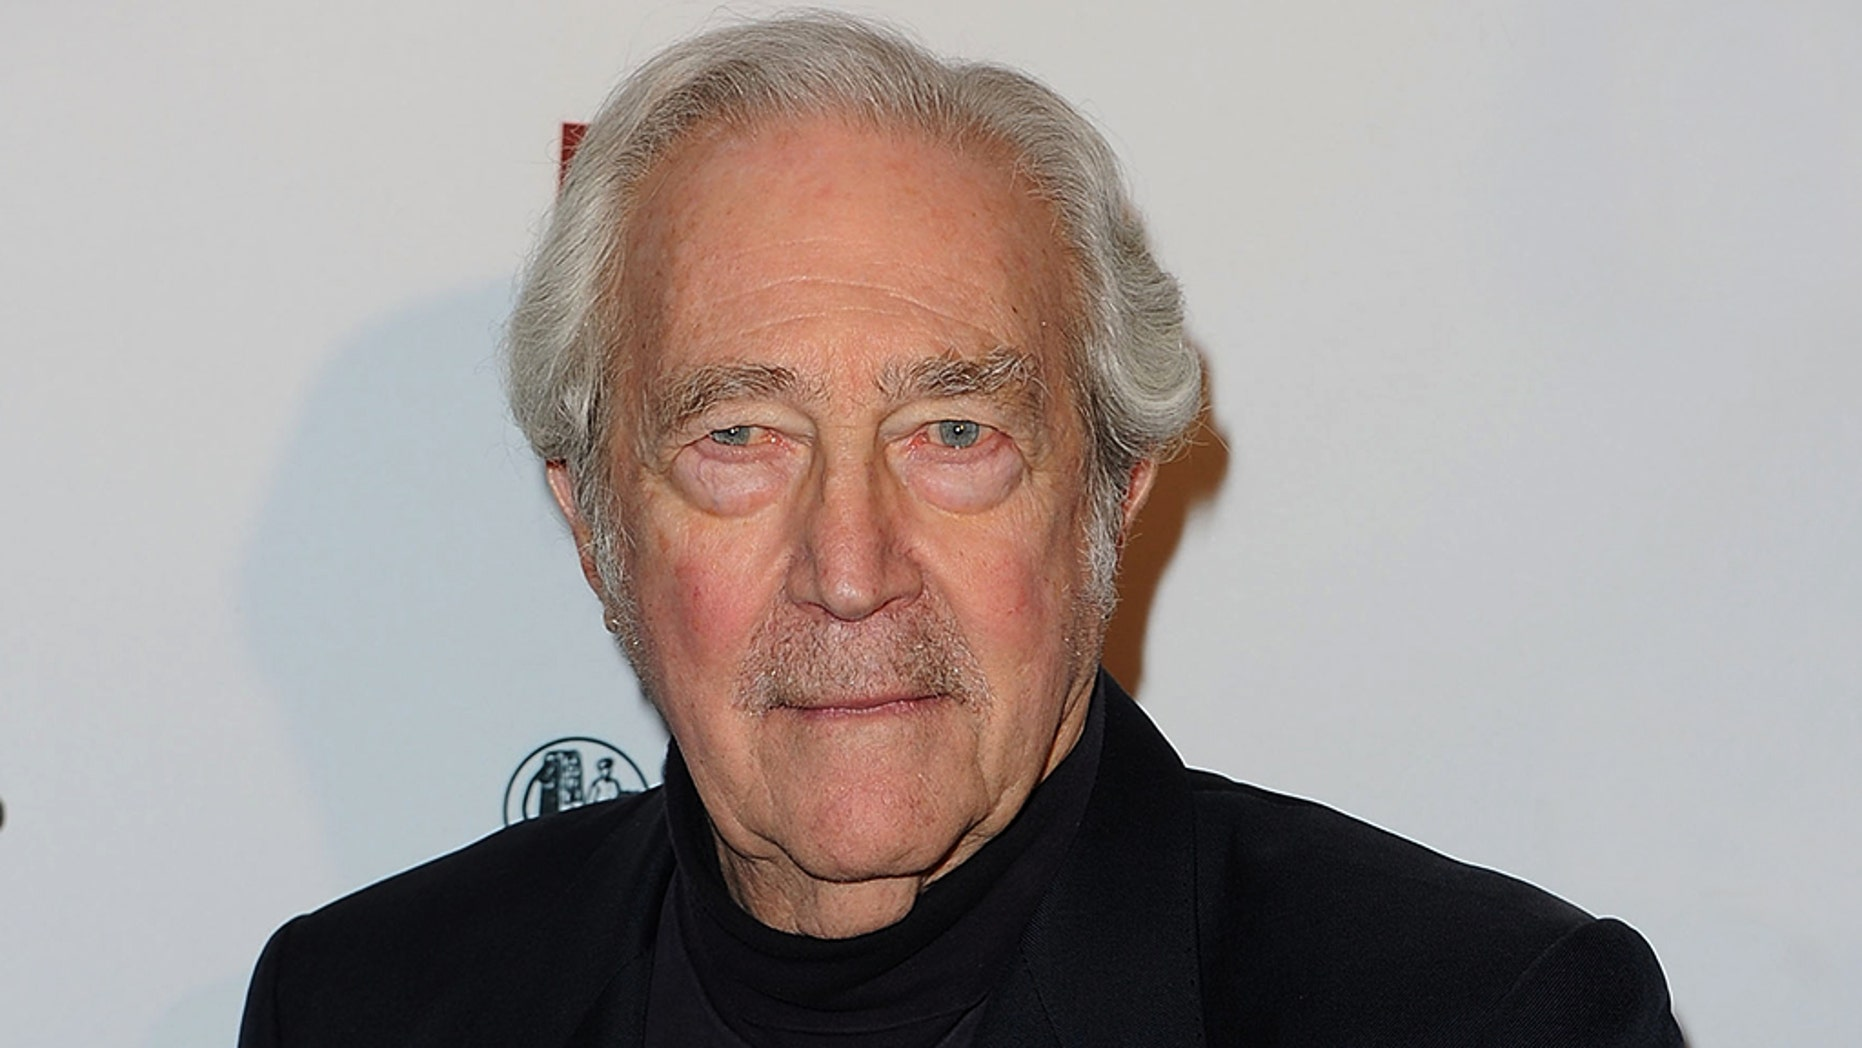 """Actor James Karen, known for his role in the famous film 'Poltergeist,' has died at the age of 94. Here, the actor attends the """"Sympathy For Delicious"""" after party on April 27, 2011 in West Hollywood, California. (Photo by Jason Merritt/Getty Images)"""